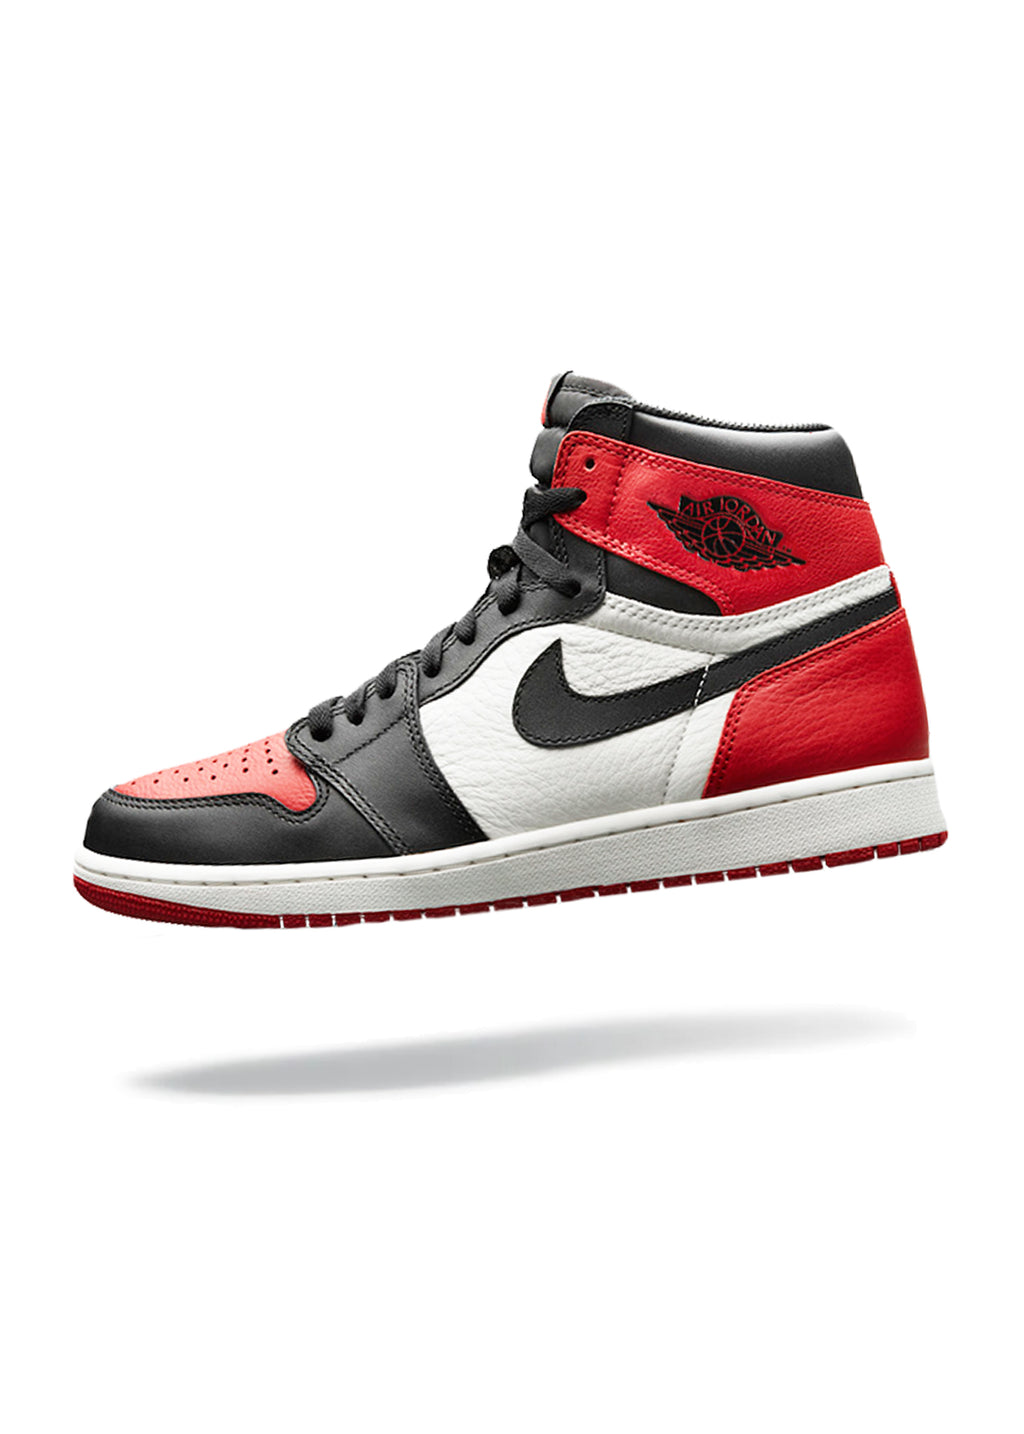 Jordan 1 Retro High Bred Toe